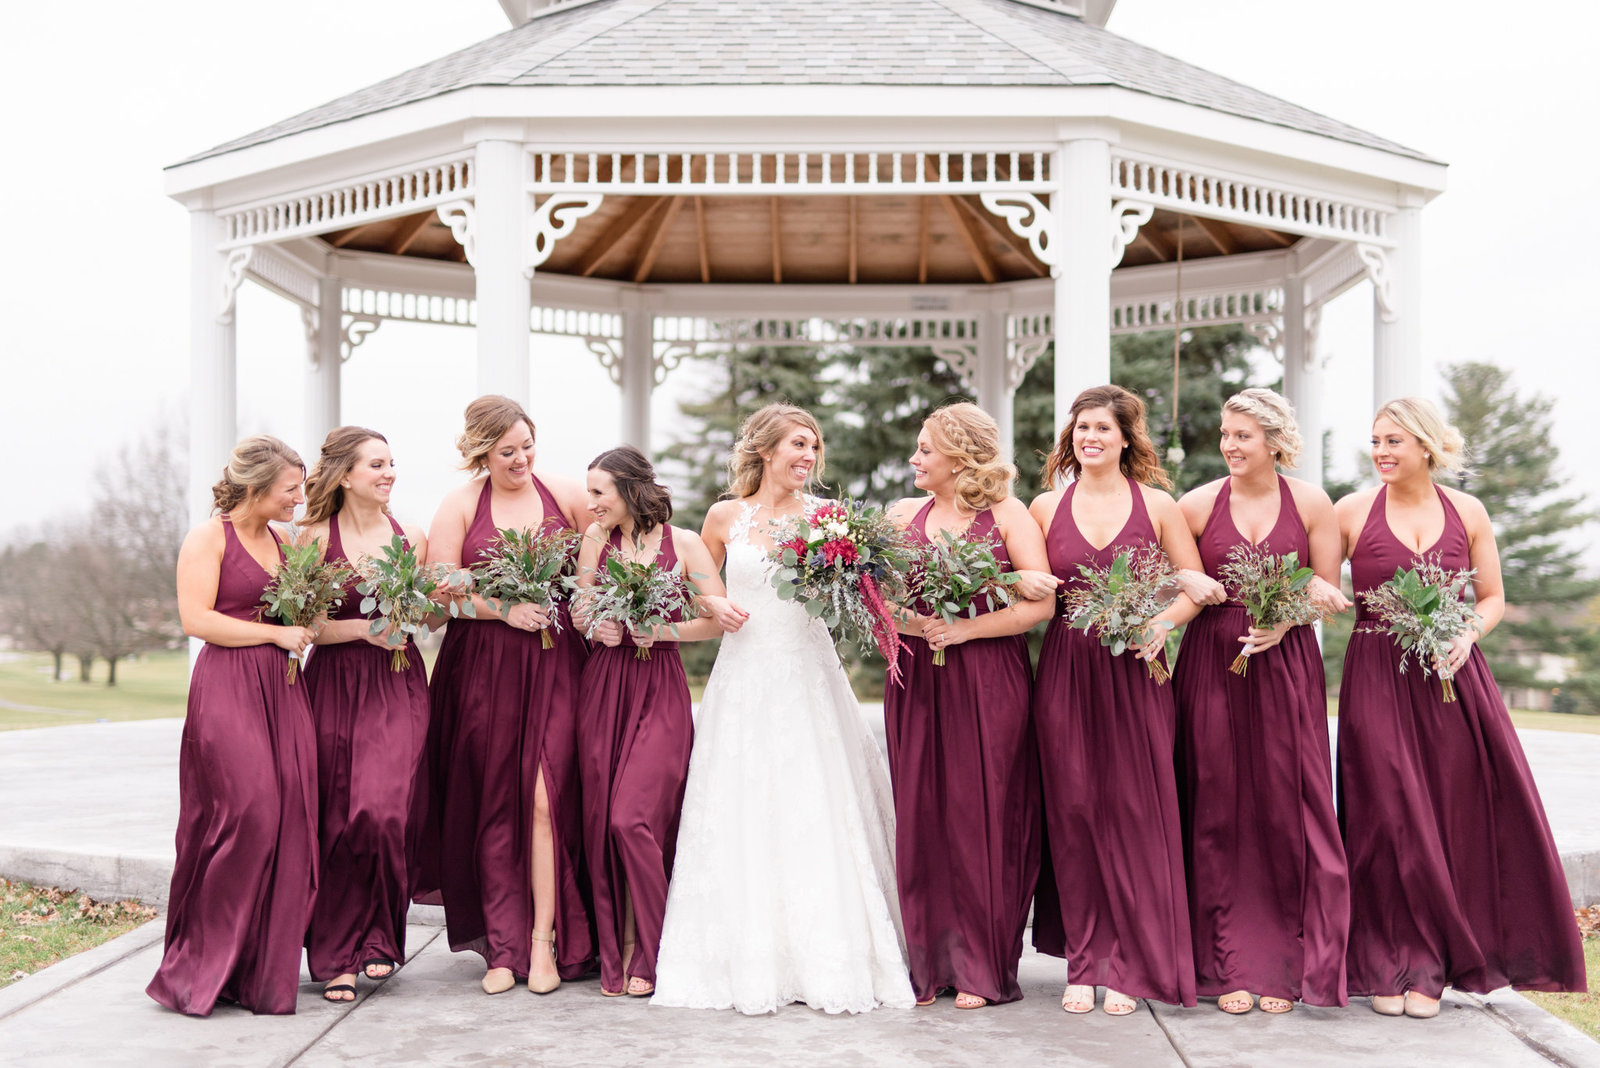 Bride-and-Bridesmaids-Pictures